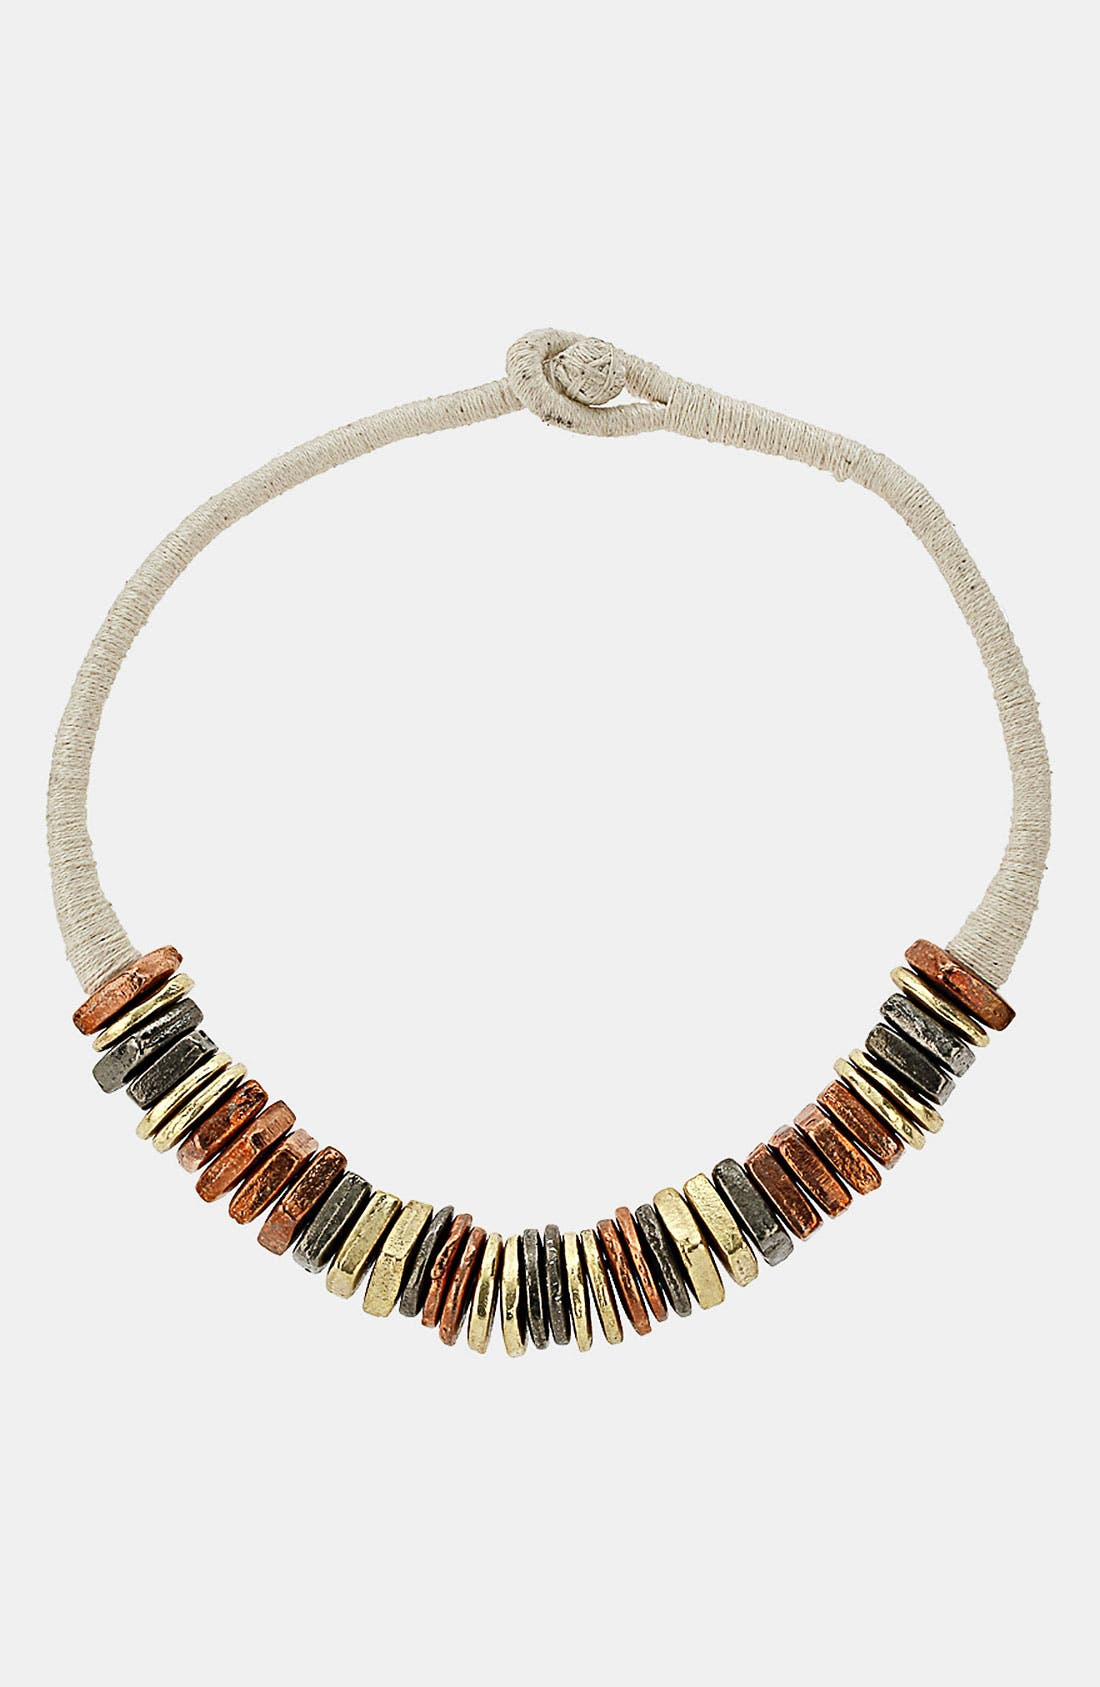 Alternate Image 1 Selected - Topshop 'Cord & Bolts' Collar Necklace